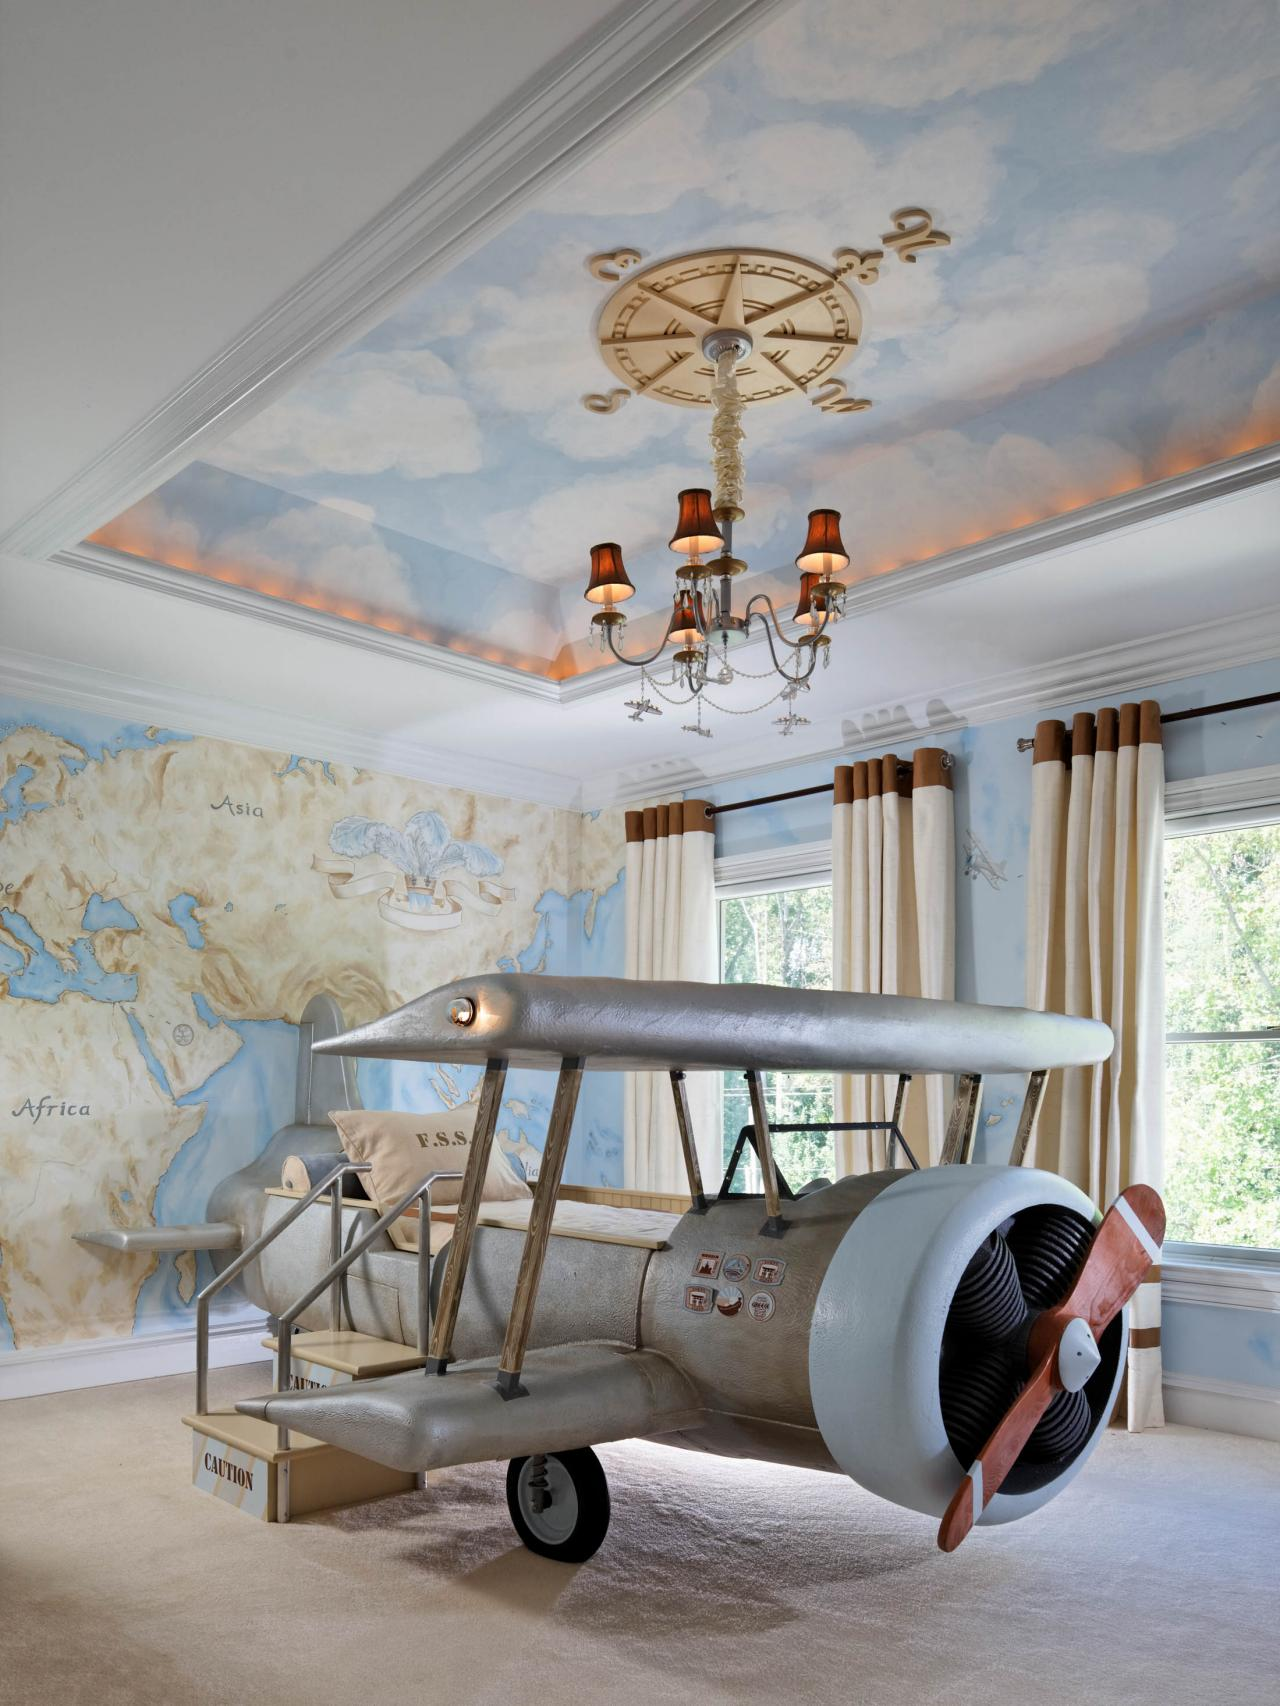 Ideas For Decorating With Airplanes